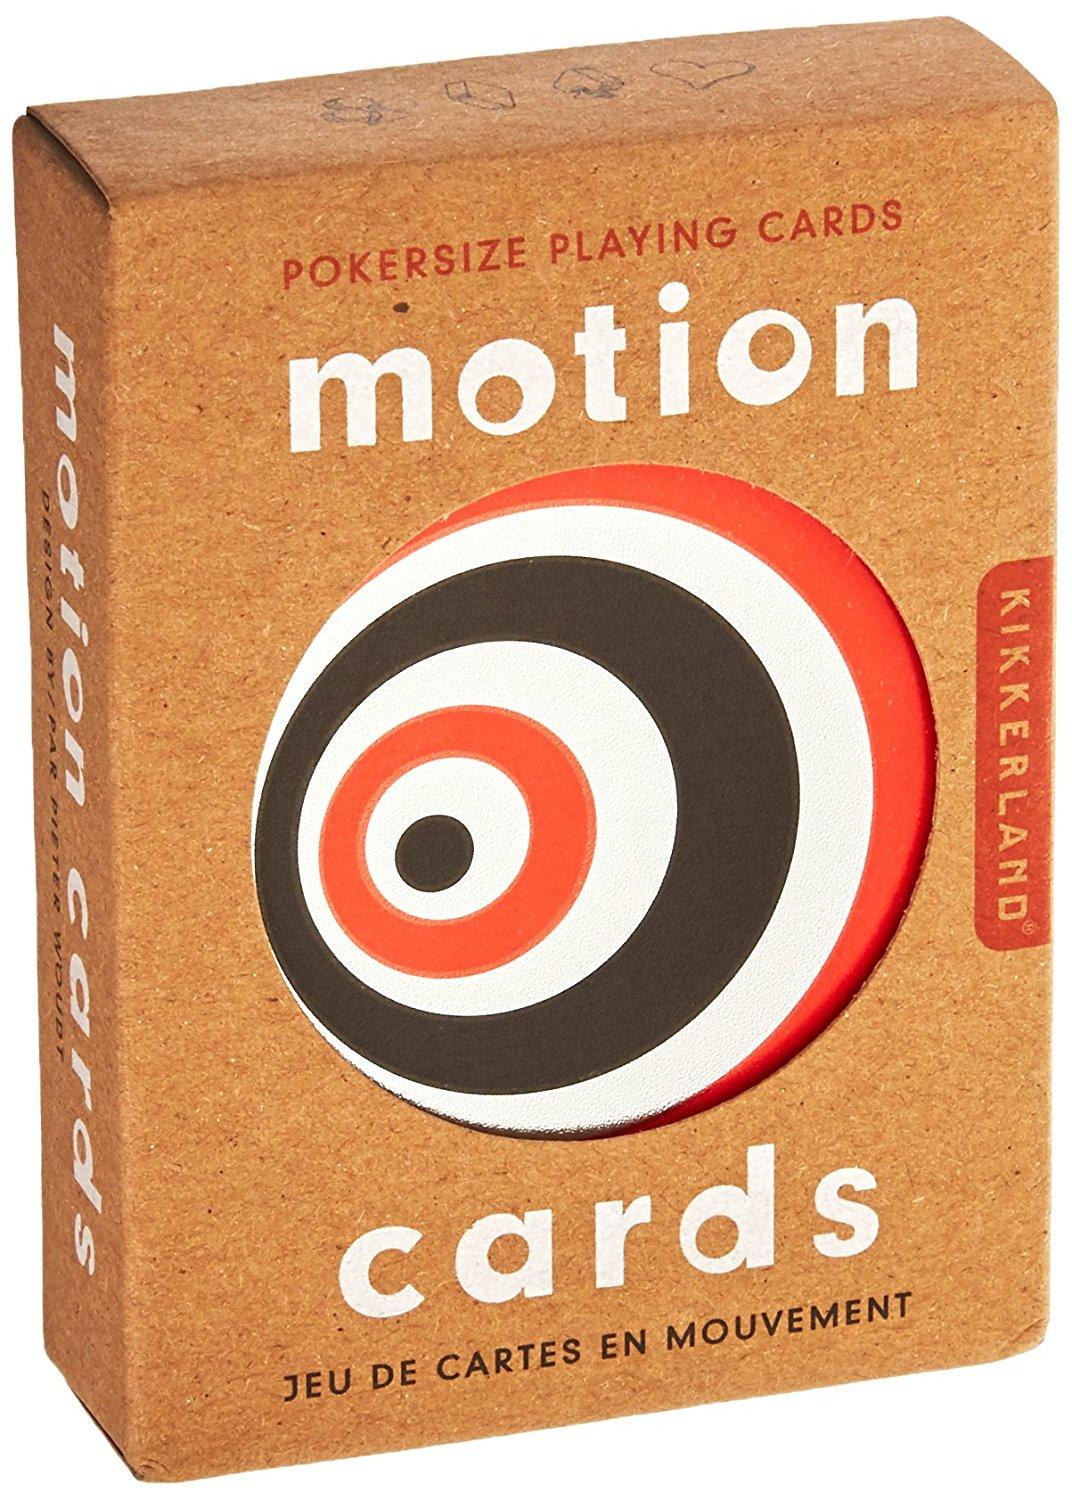 Amazon.com: Kikkerland Motion Playing Cards: Toys & Games